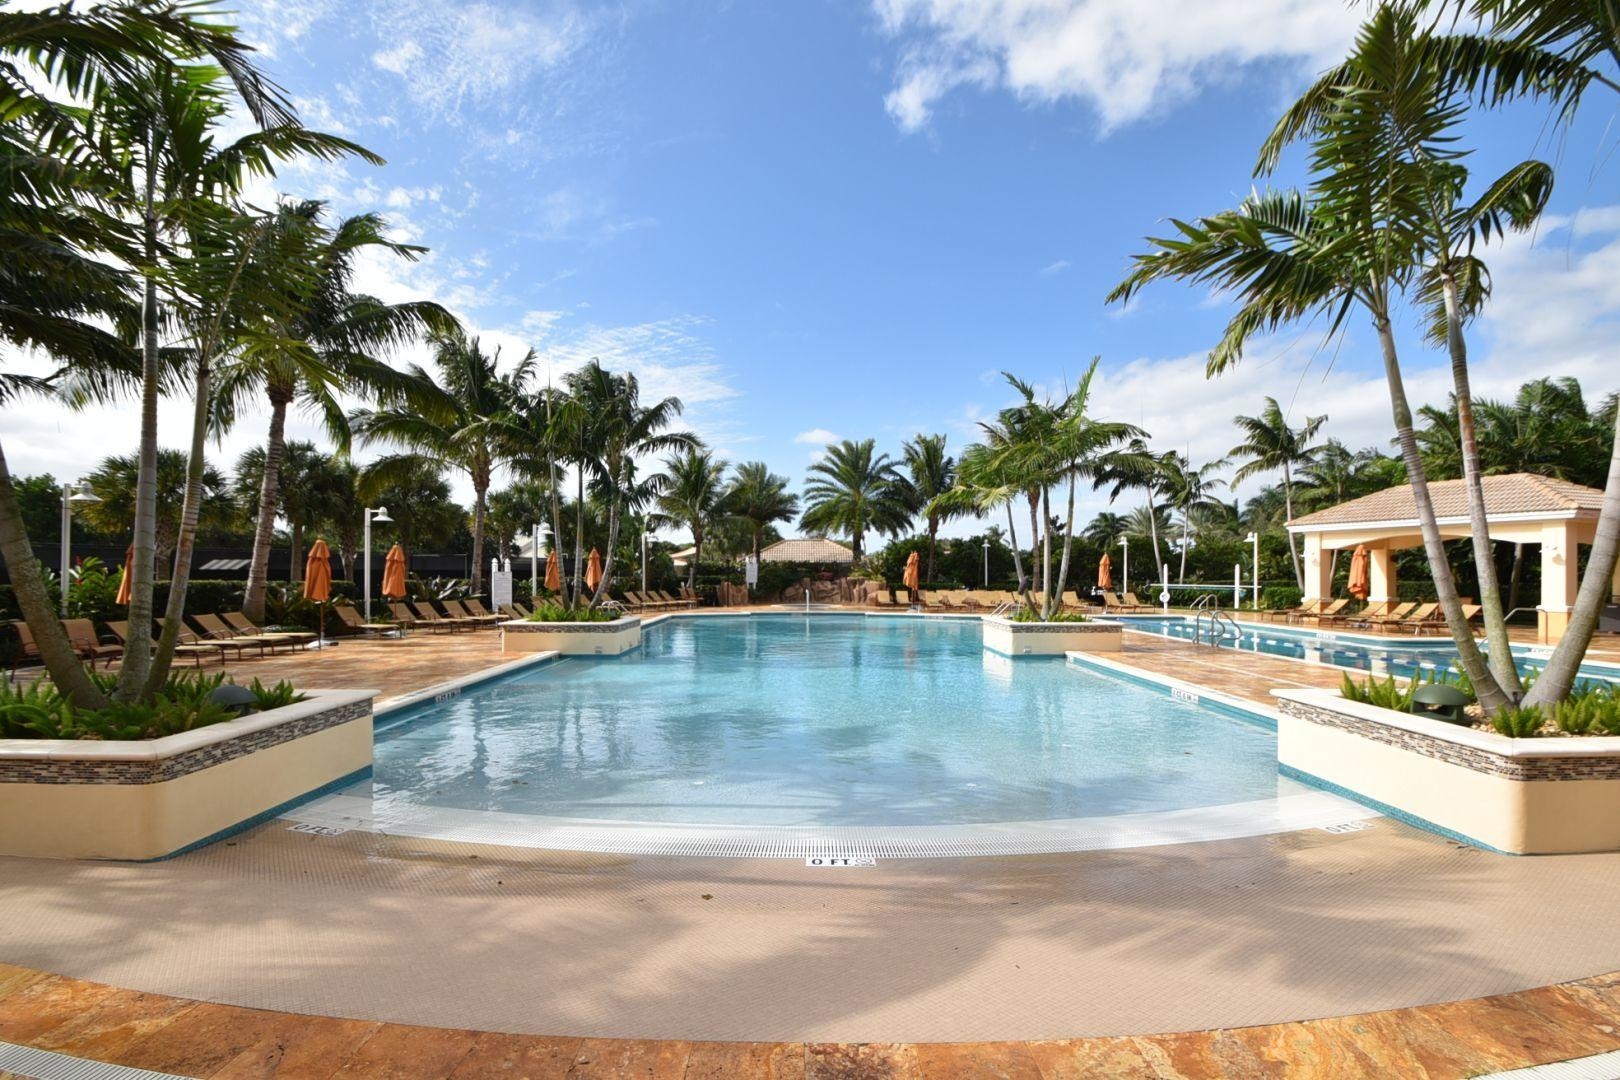 BOCAIRE COUNTRY CLUB HOMES